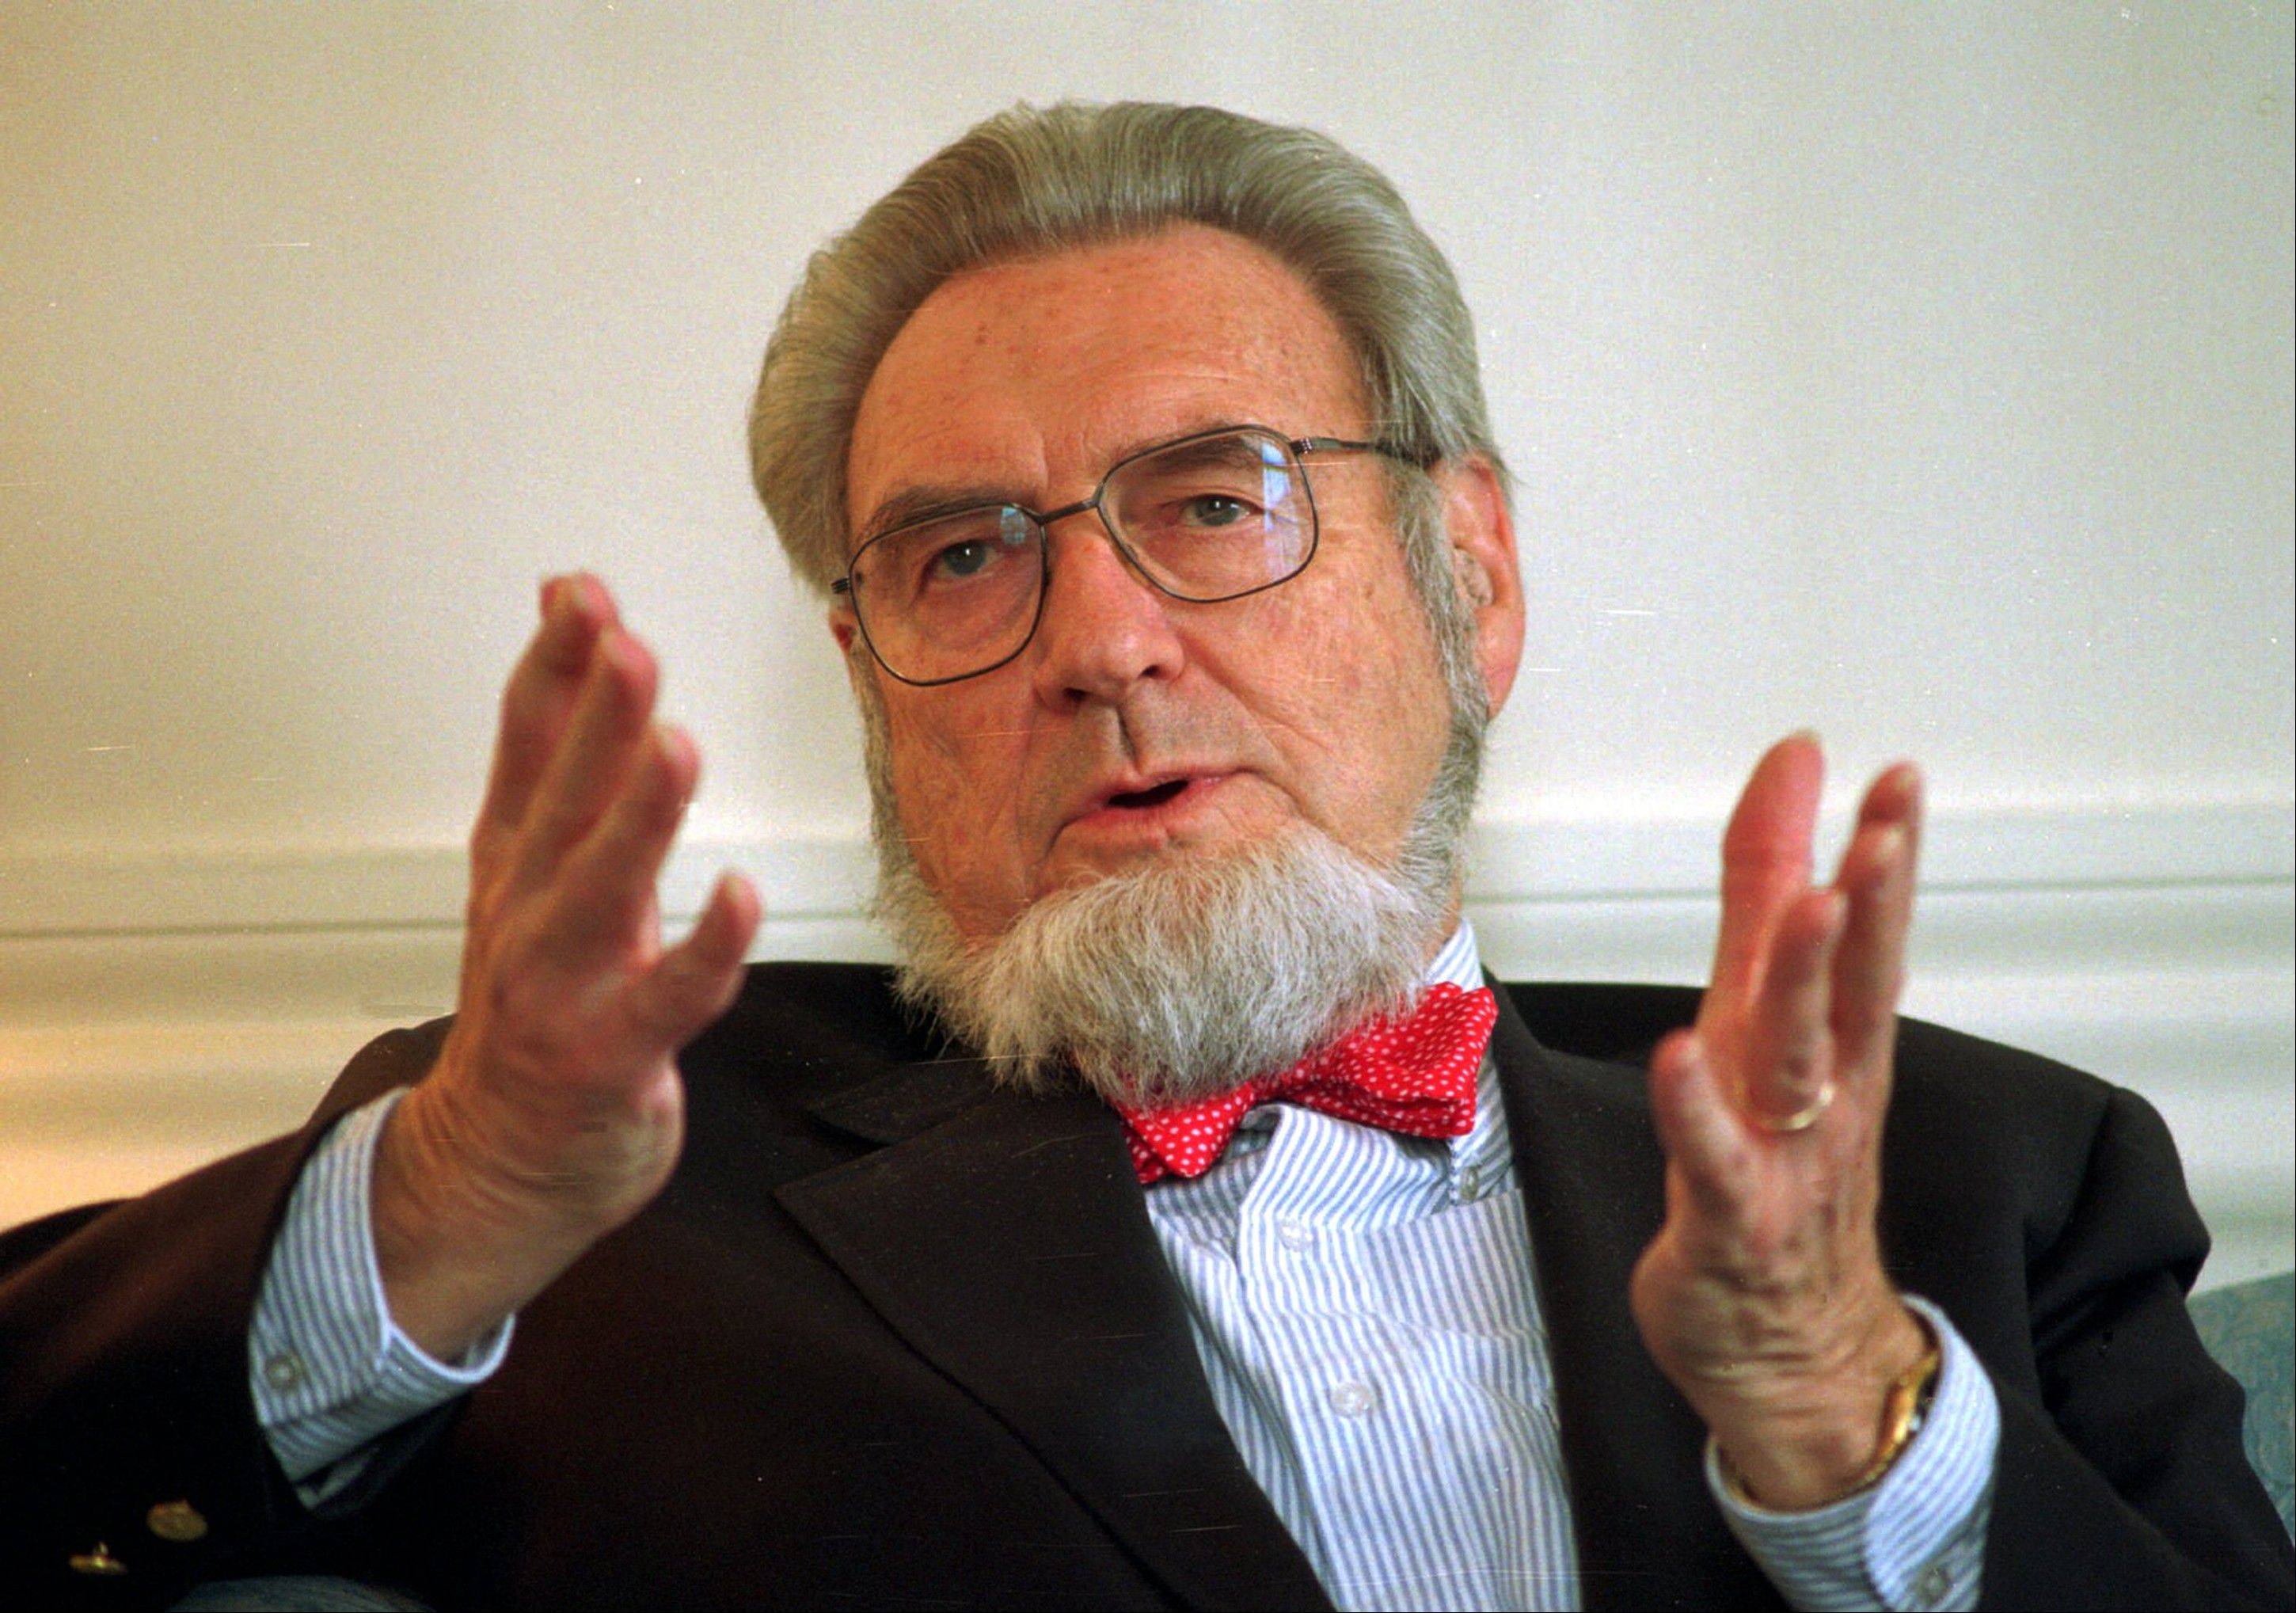 Former Surgeon General Dr. C. Everett Koop, who raised the profile of the surgeon general by riveting America�s attention on the then-emerging disease known as AIDS and by railing against smoking, died Monday at age 96.